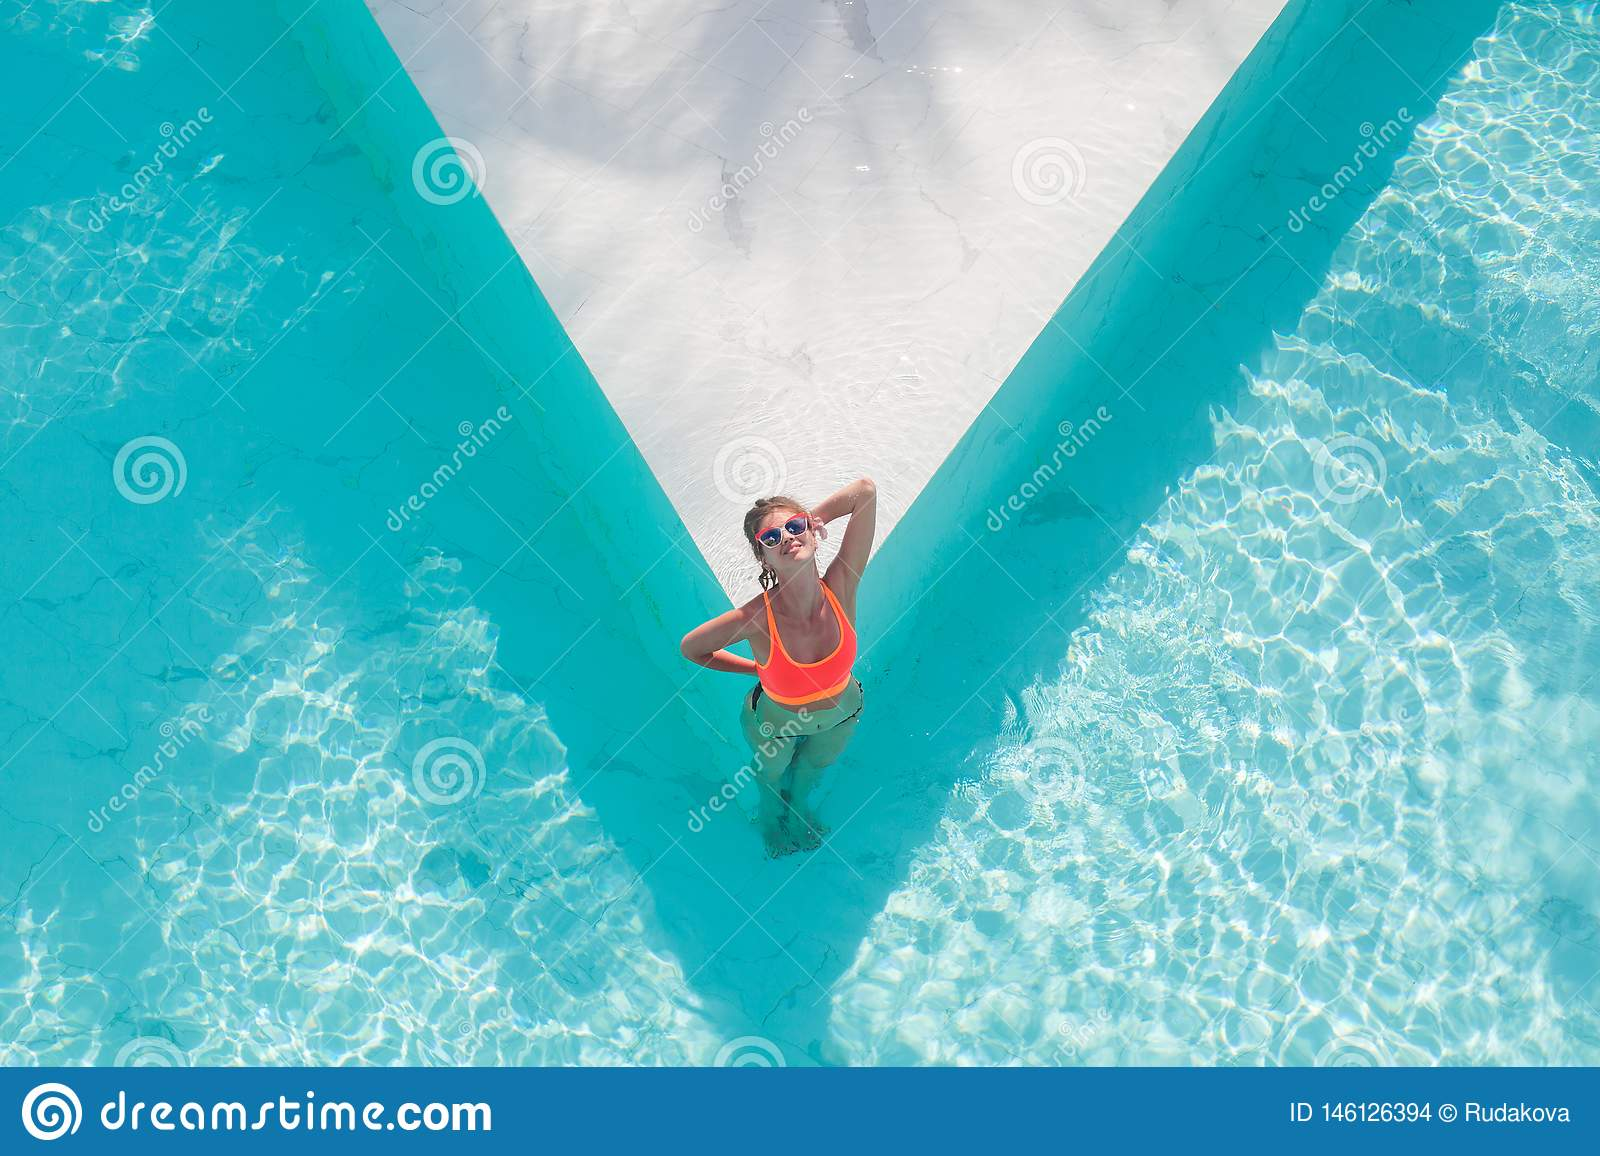 Top view aerial photo of model in bright swimwear relaxing in hotel pool during her summer weekend